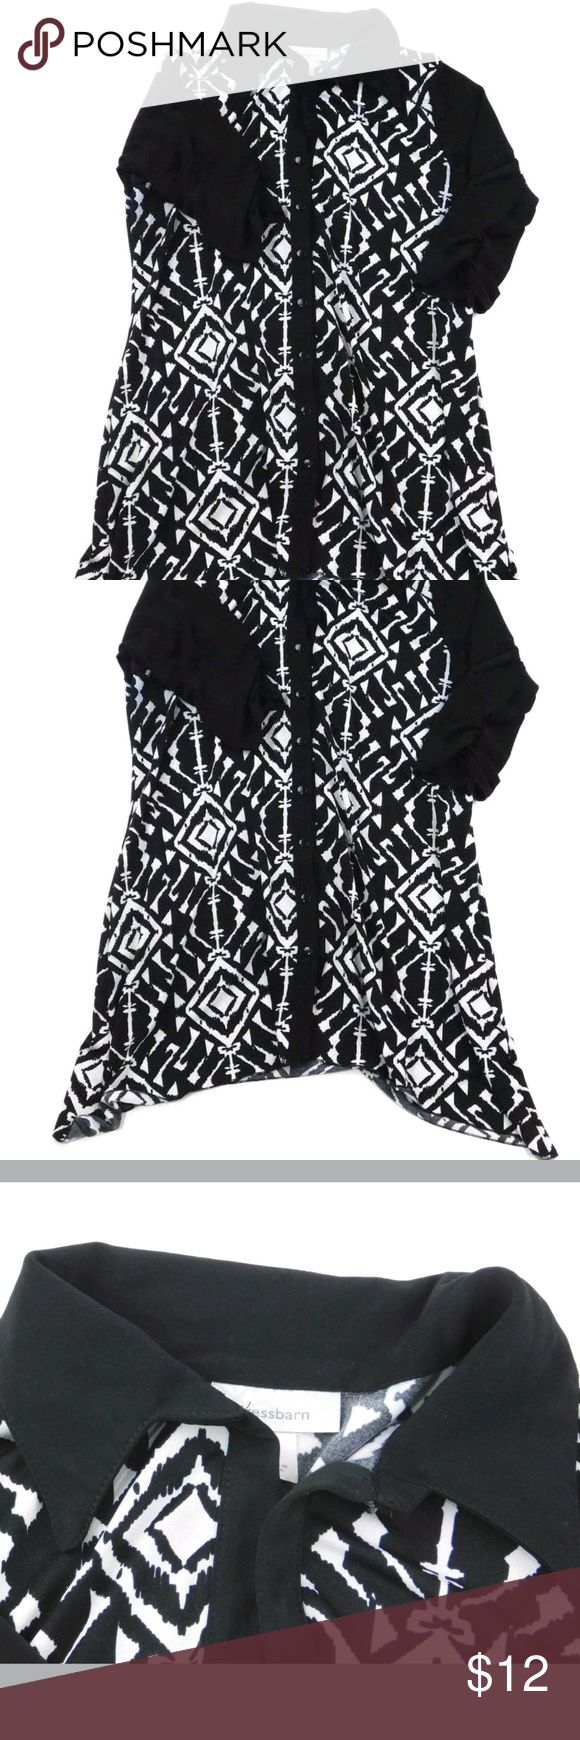 Dress Barn Black & White Button Down Rouched This black